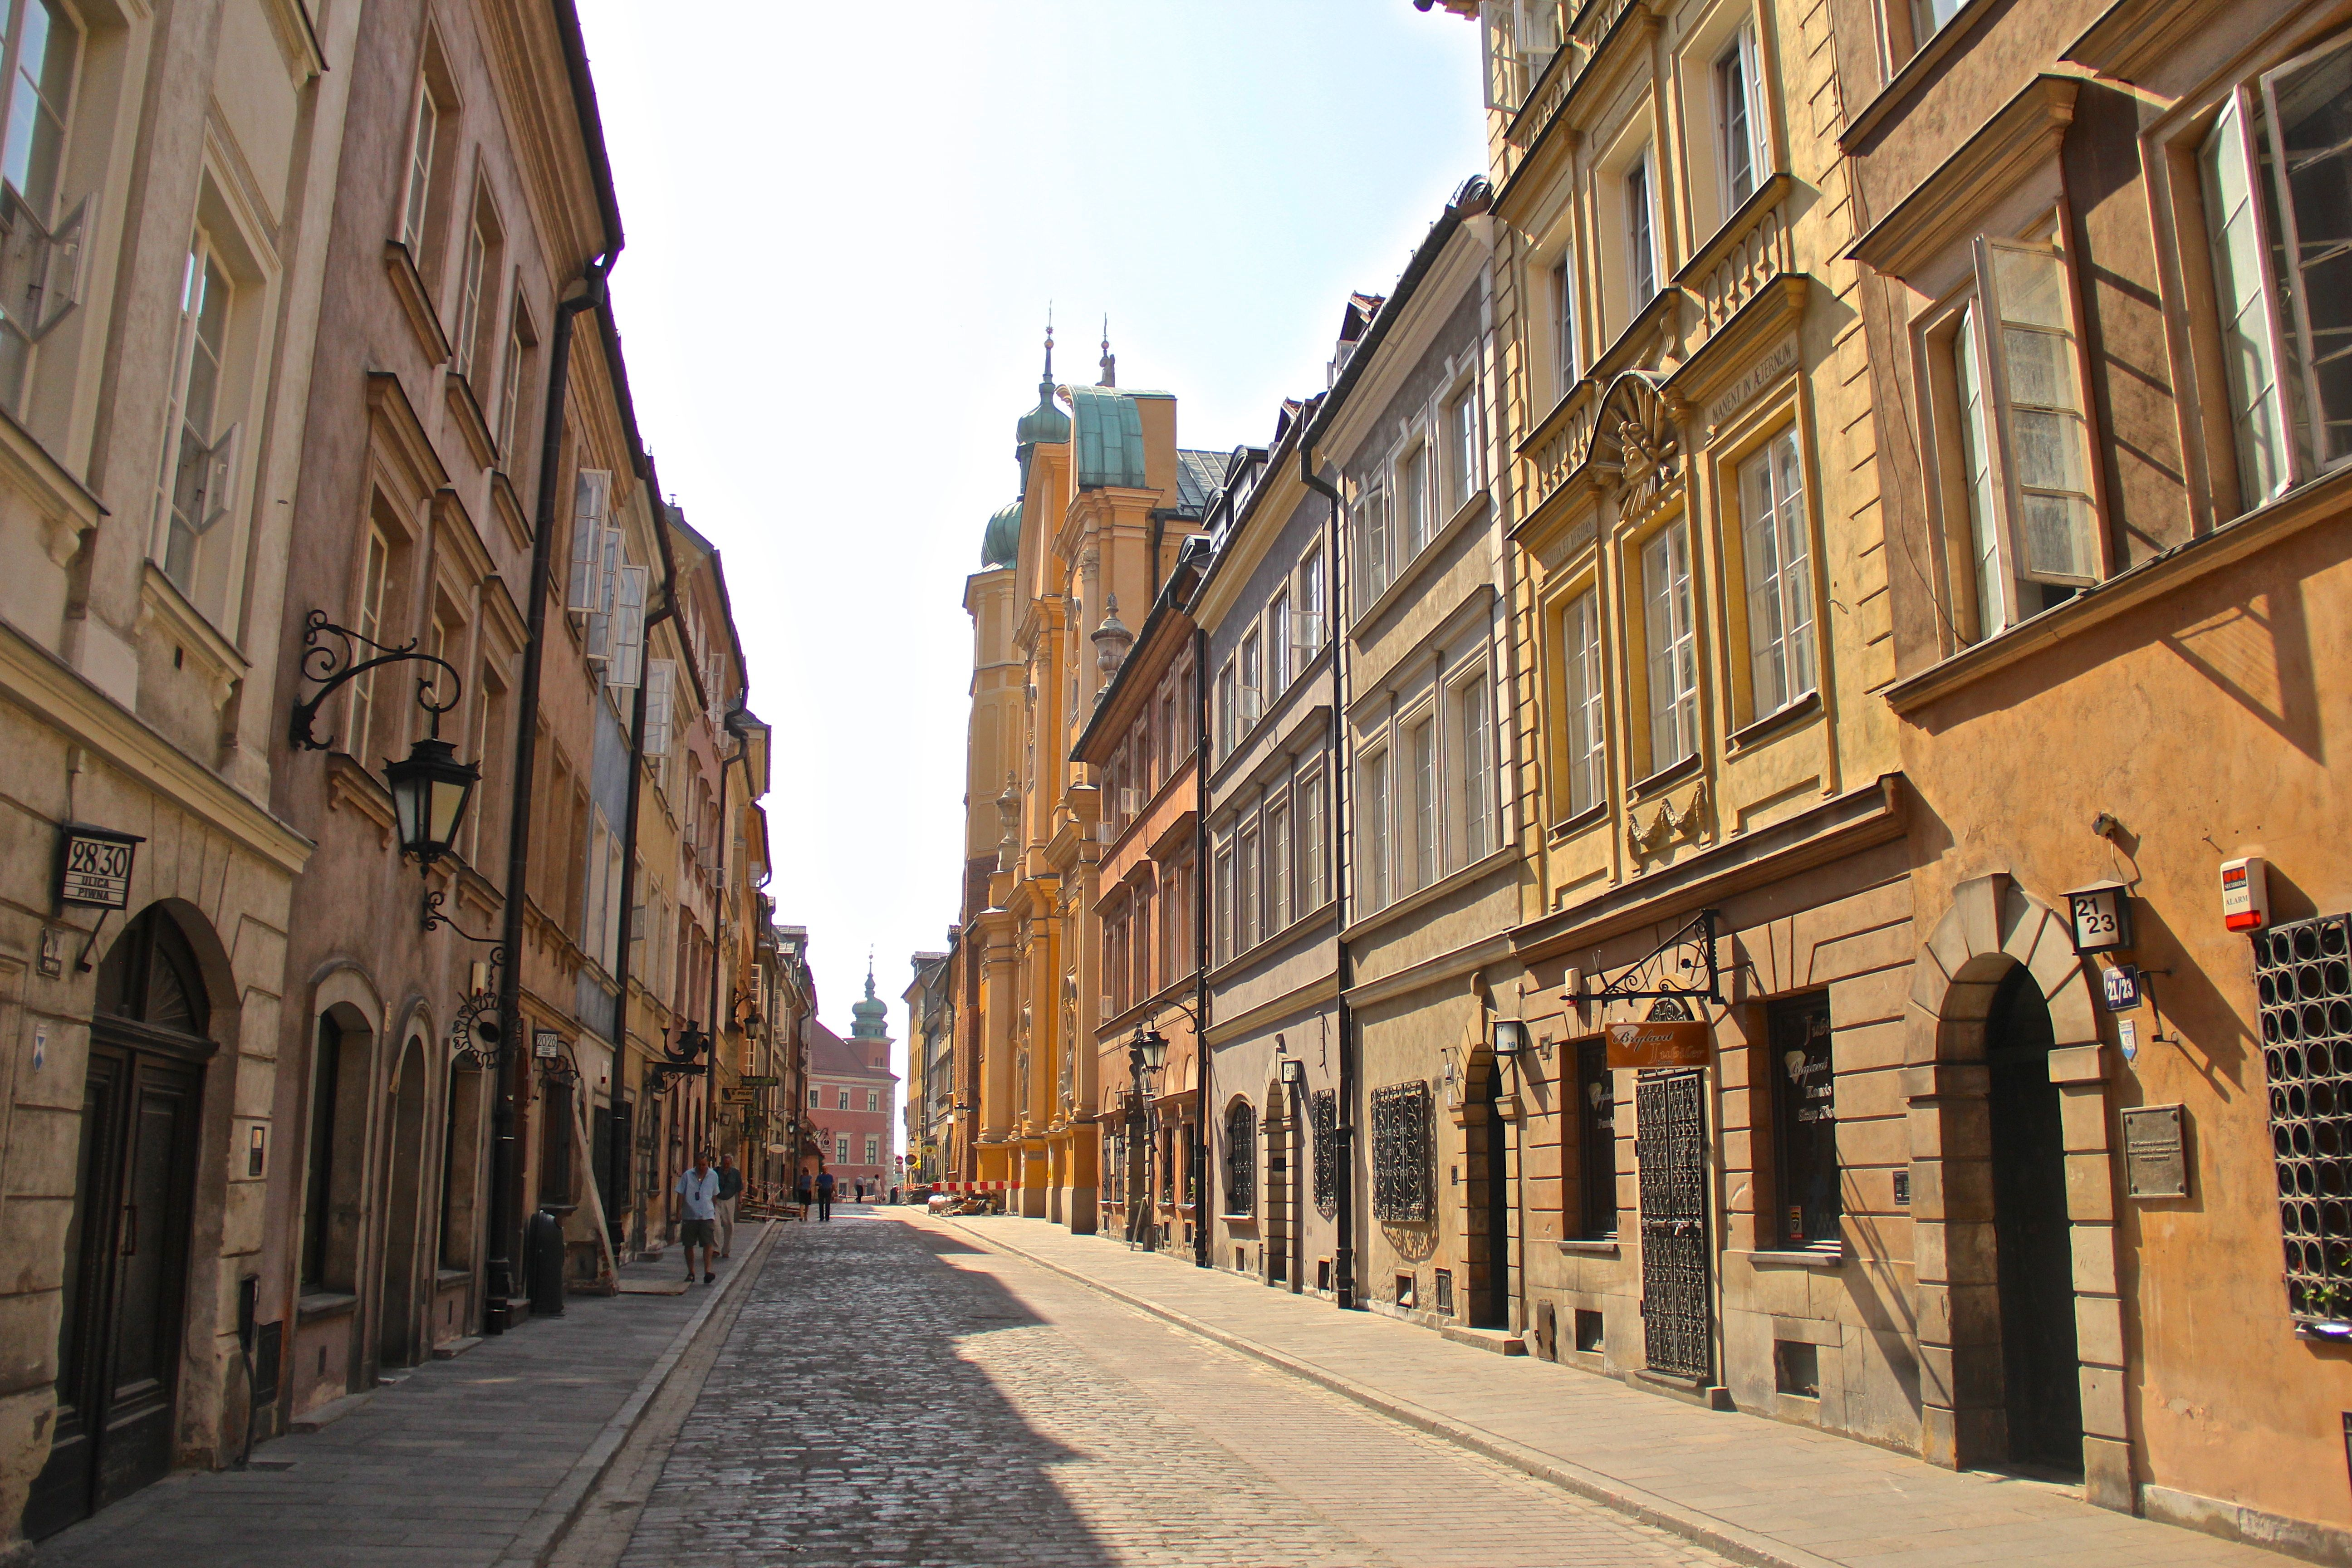 WaRsAw OLd tOwN   SWEE...